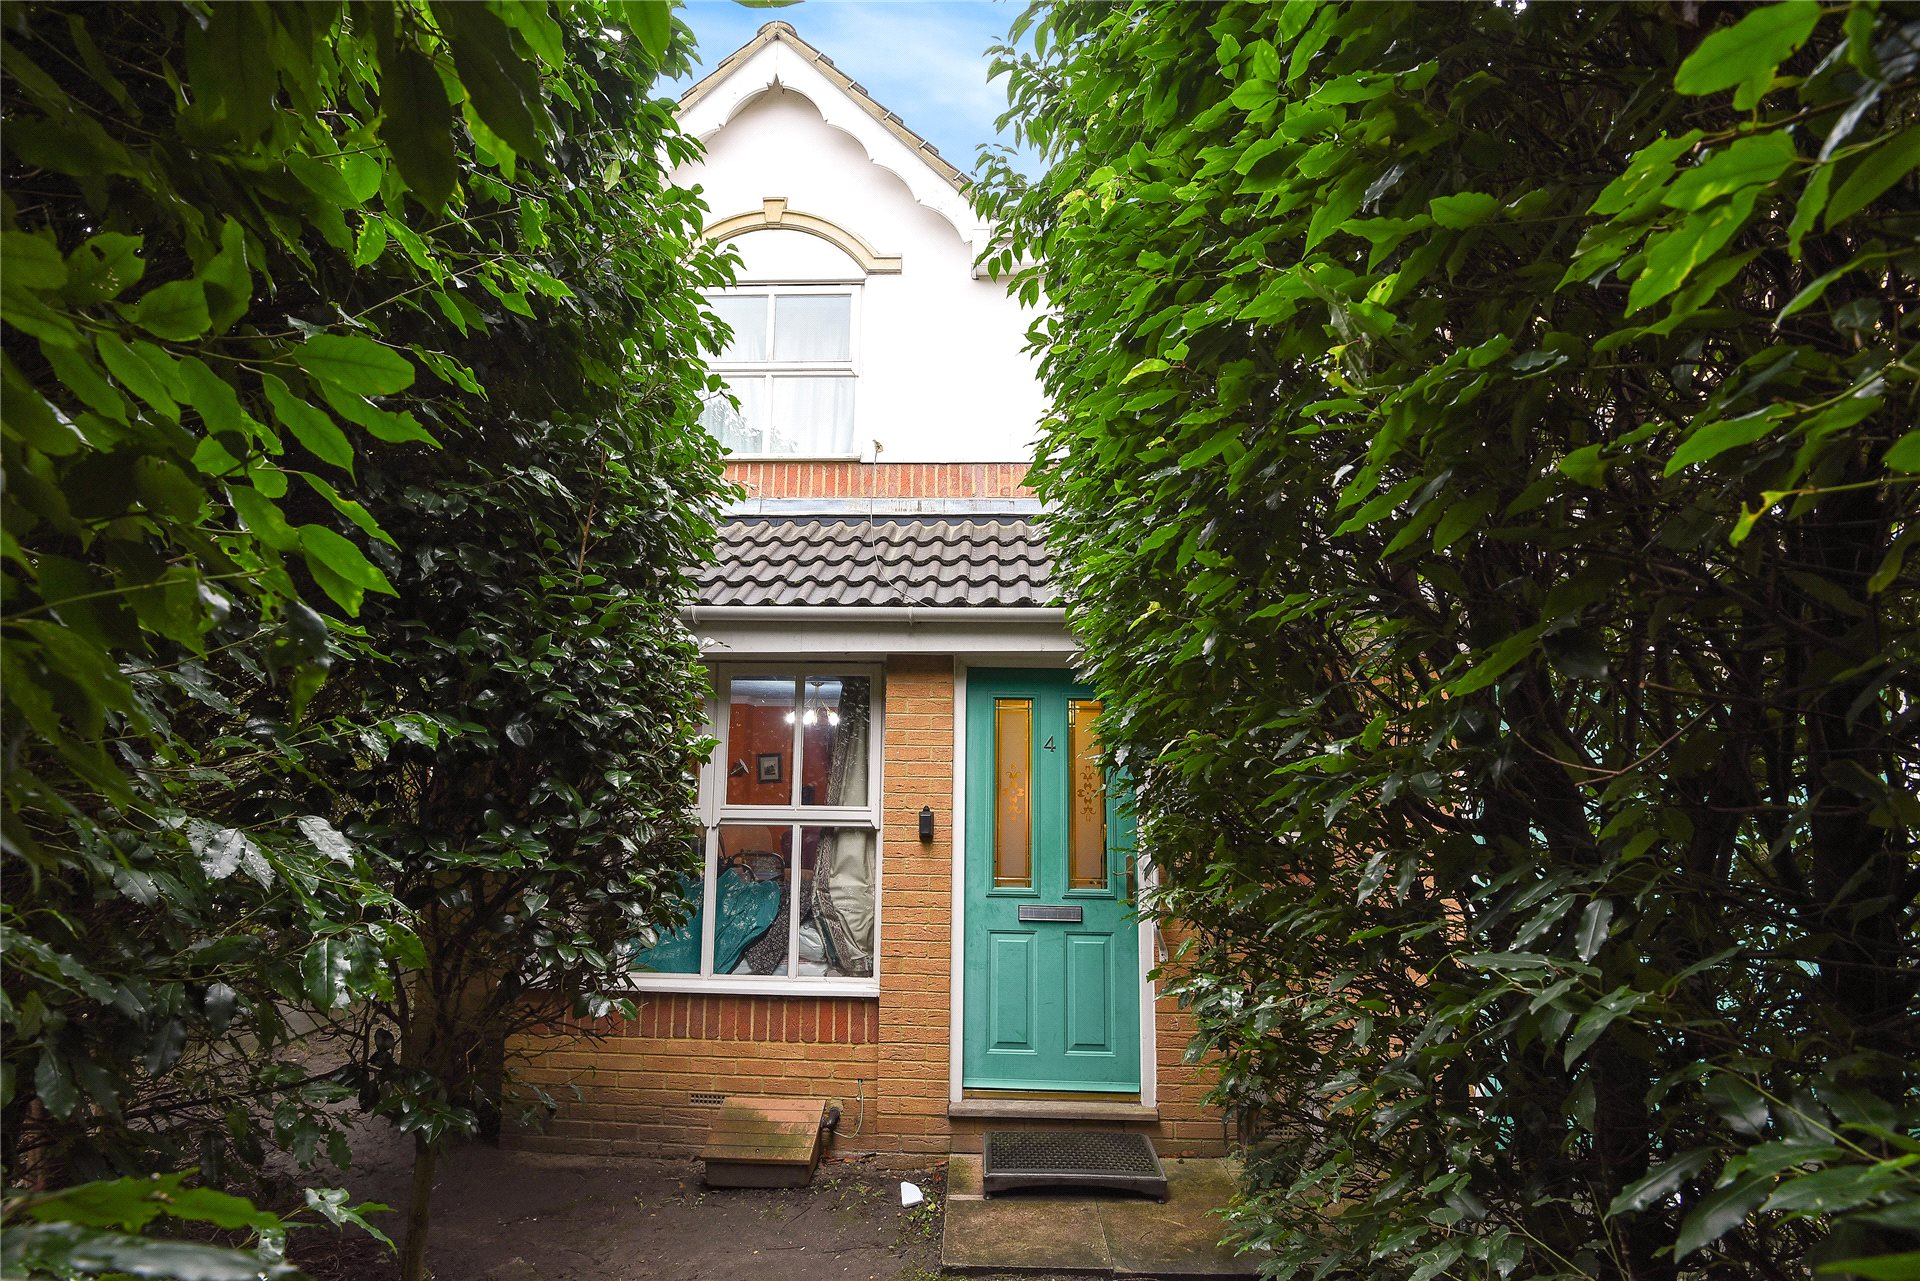 3 Bedrooms Link Detached House for sale in Denbeigh Place, Reading, Berkshire, RG1